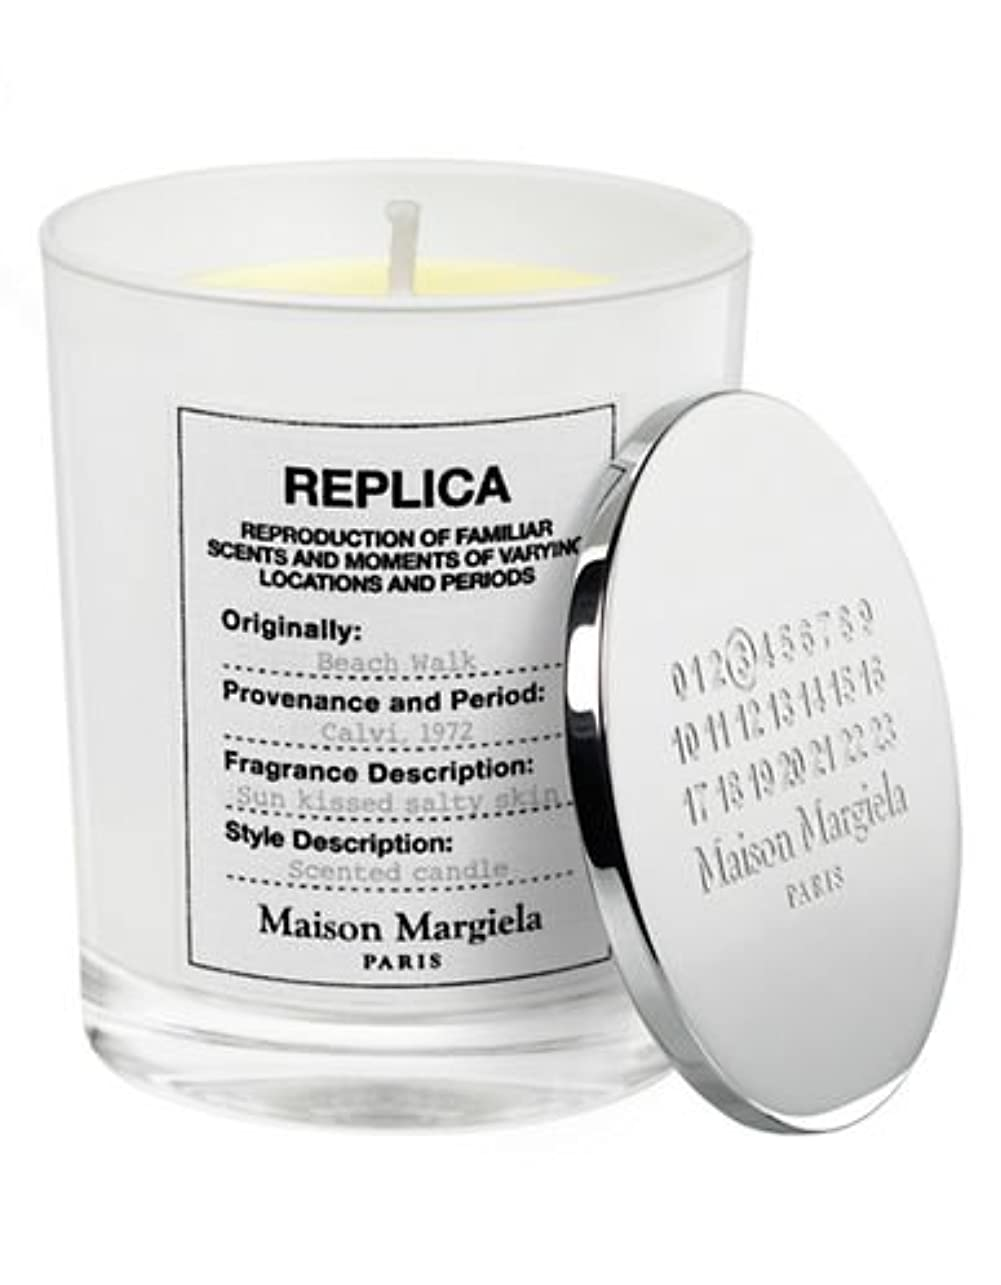 意図村また( 1 ) Maison Margiela 'レプリカ' Beach Walk Scented Candle 5.82oz